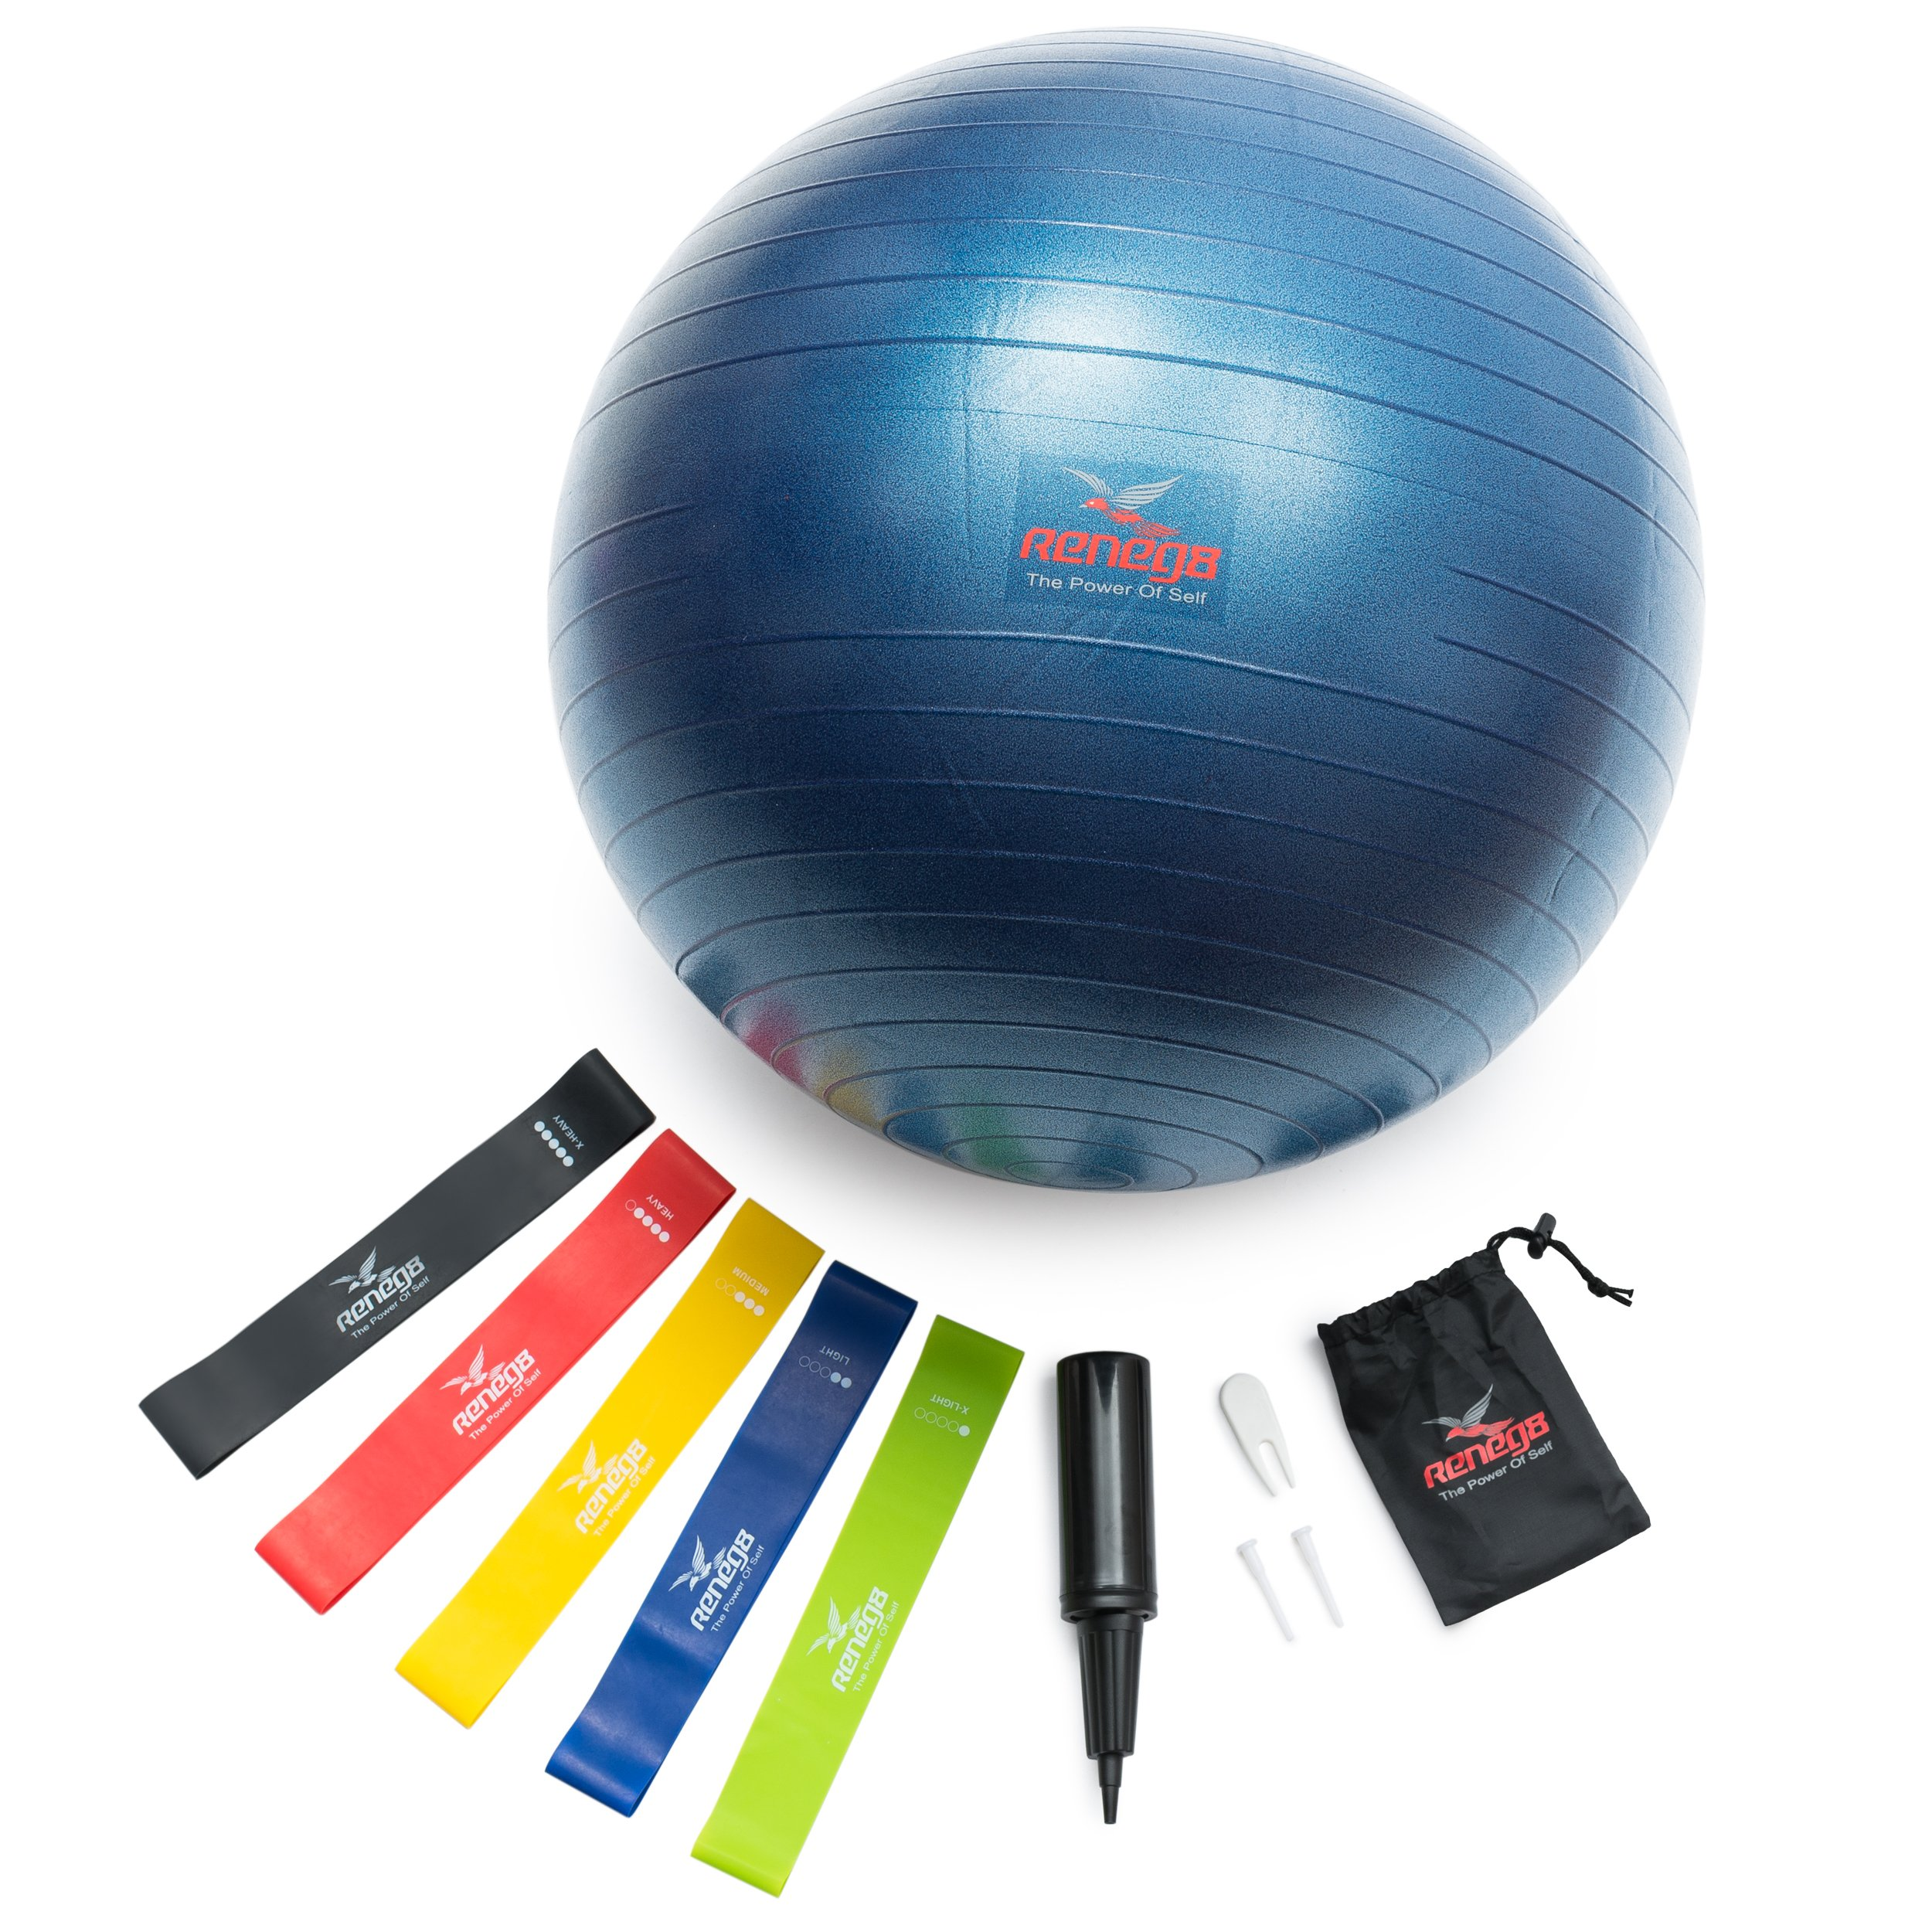 Yoga Exercise Ball and Resistance Bands Set, for The Ultimate Home Workout Experience by RENEG8 - Includes Set of 5 Loop Bands & Heavy Duty Stability Ball with Non Slip Anti Burst Design